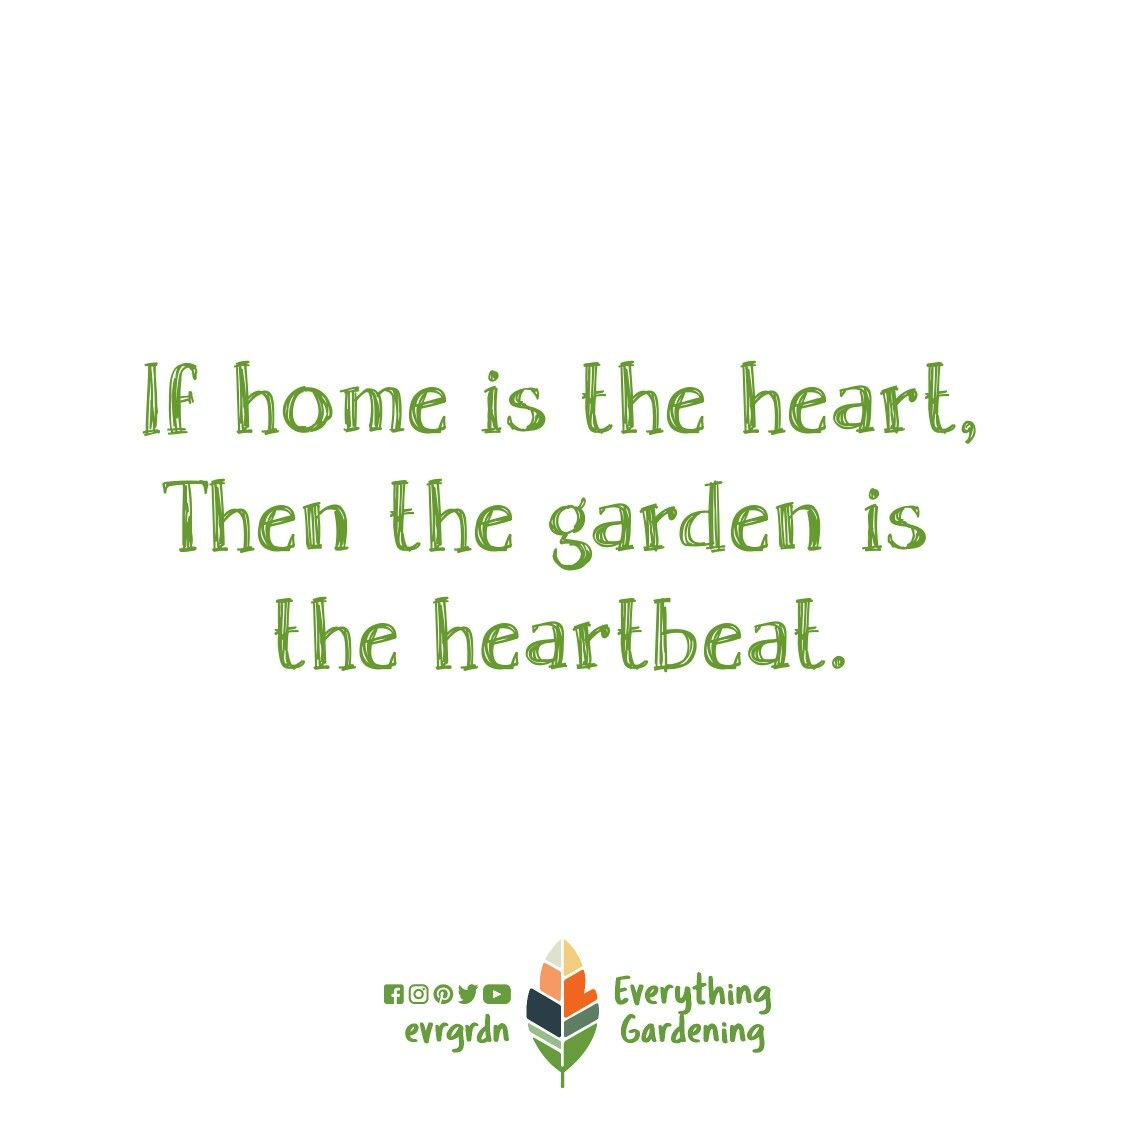 Garden Is The Heartbeat Home Garden Heartbeat Gardening Quotes